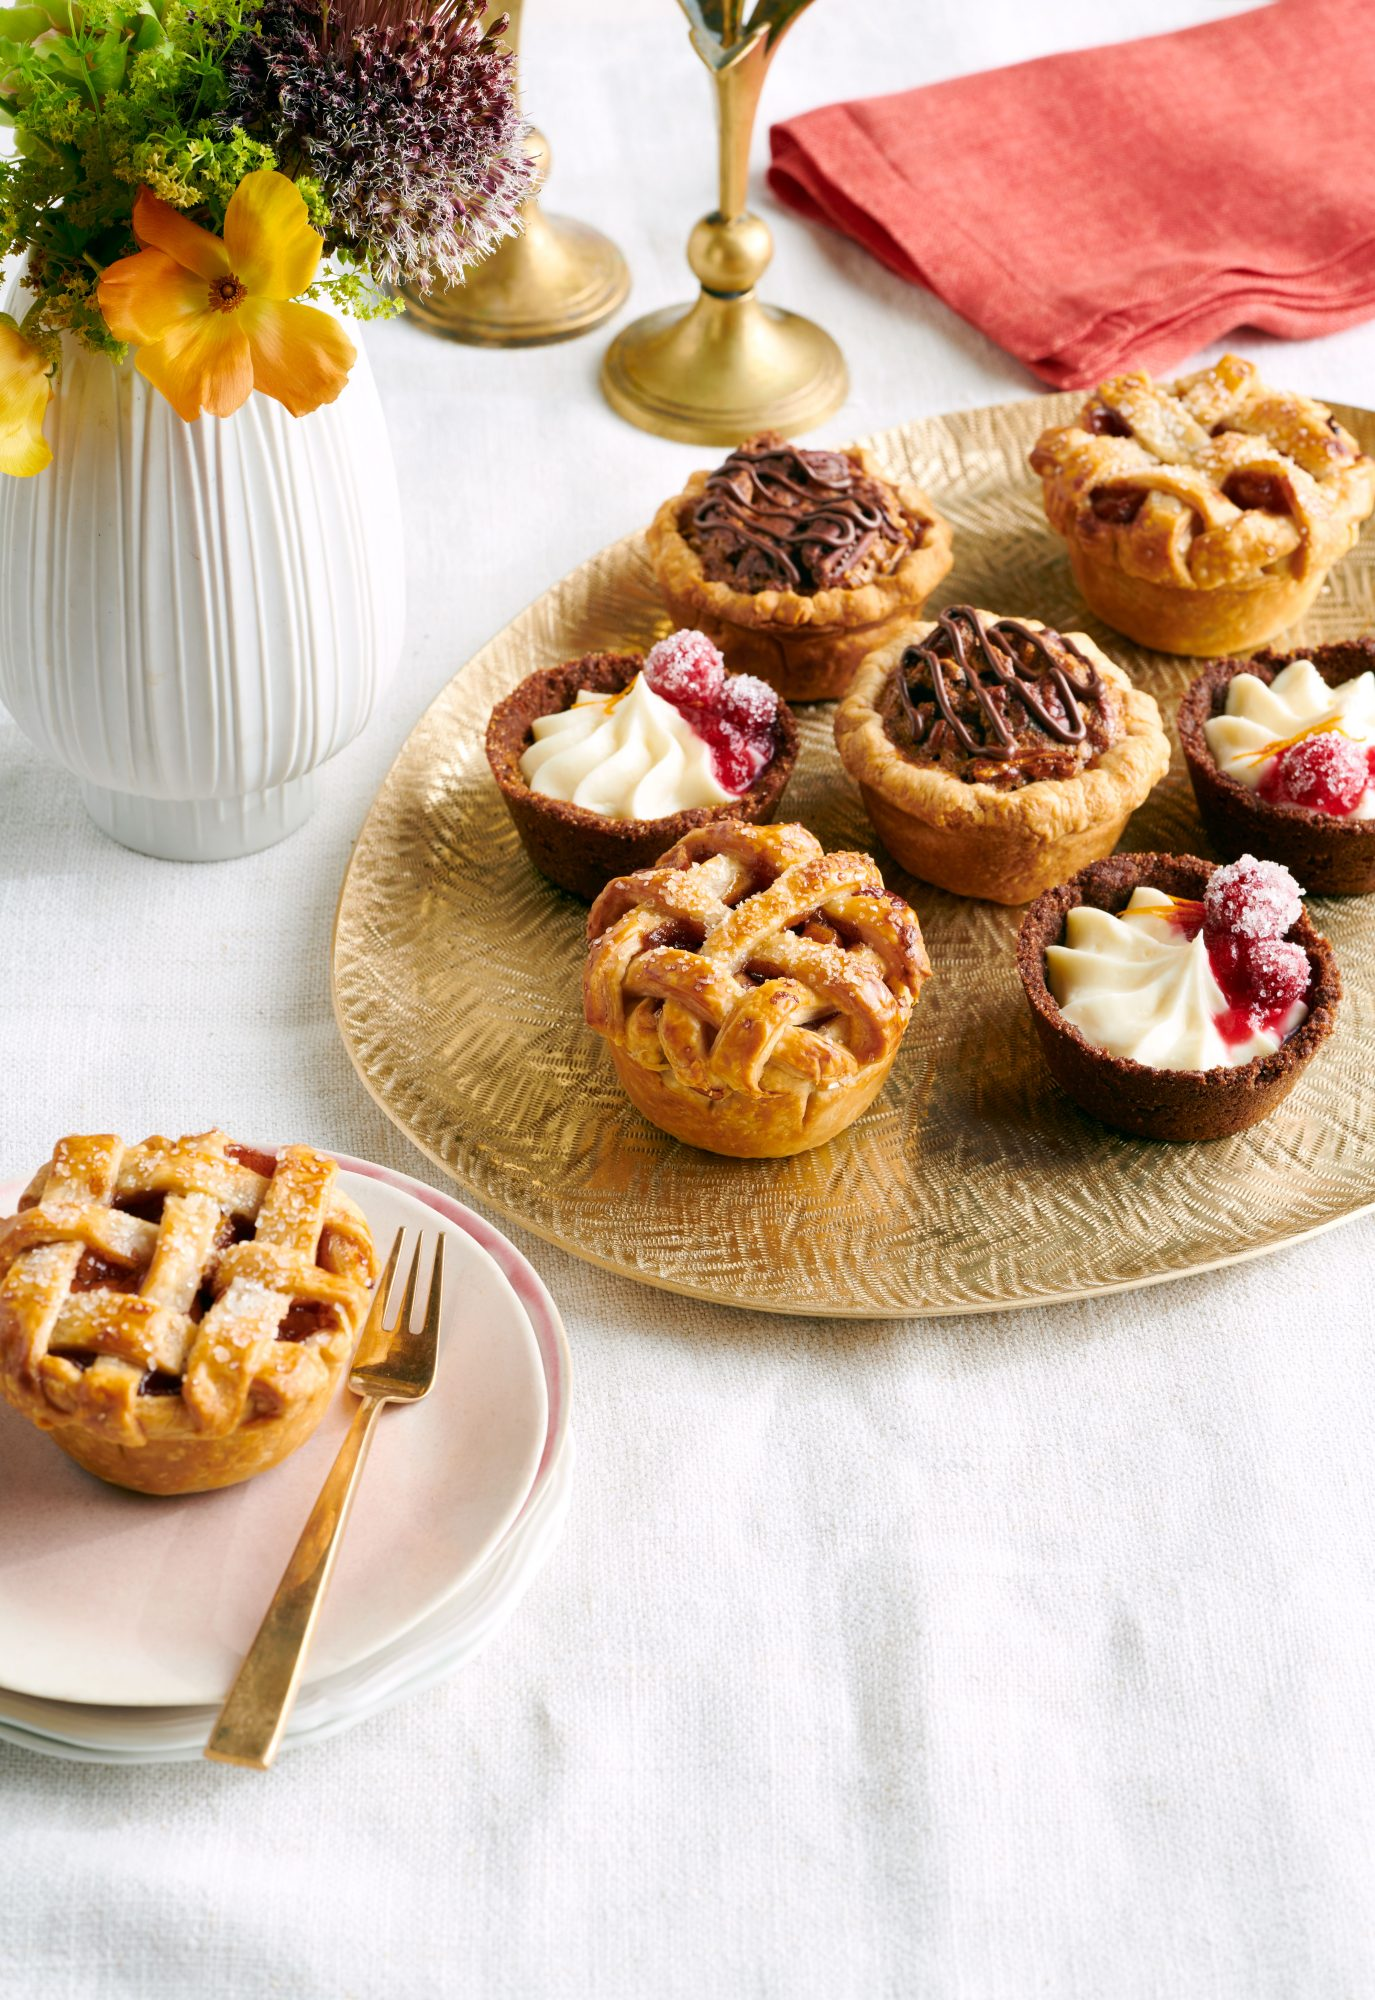 Mini Apple-Cinnamon Pies, Mini Cranberry-Cheesecake Pies, and Mini Chocolate-Pecan Pies